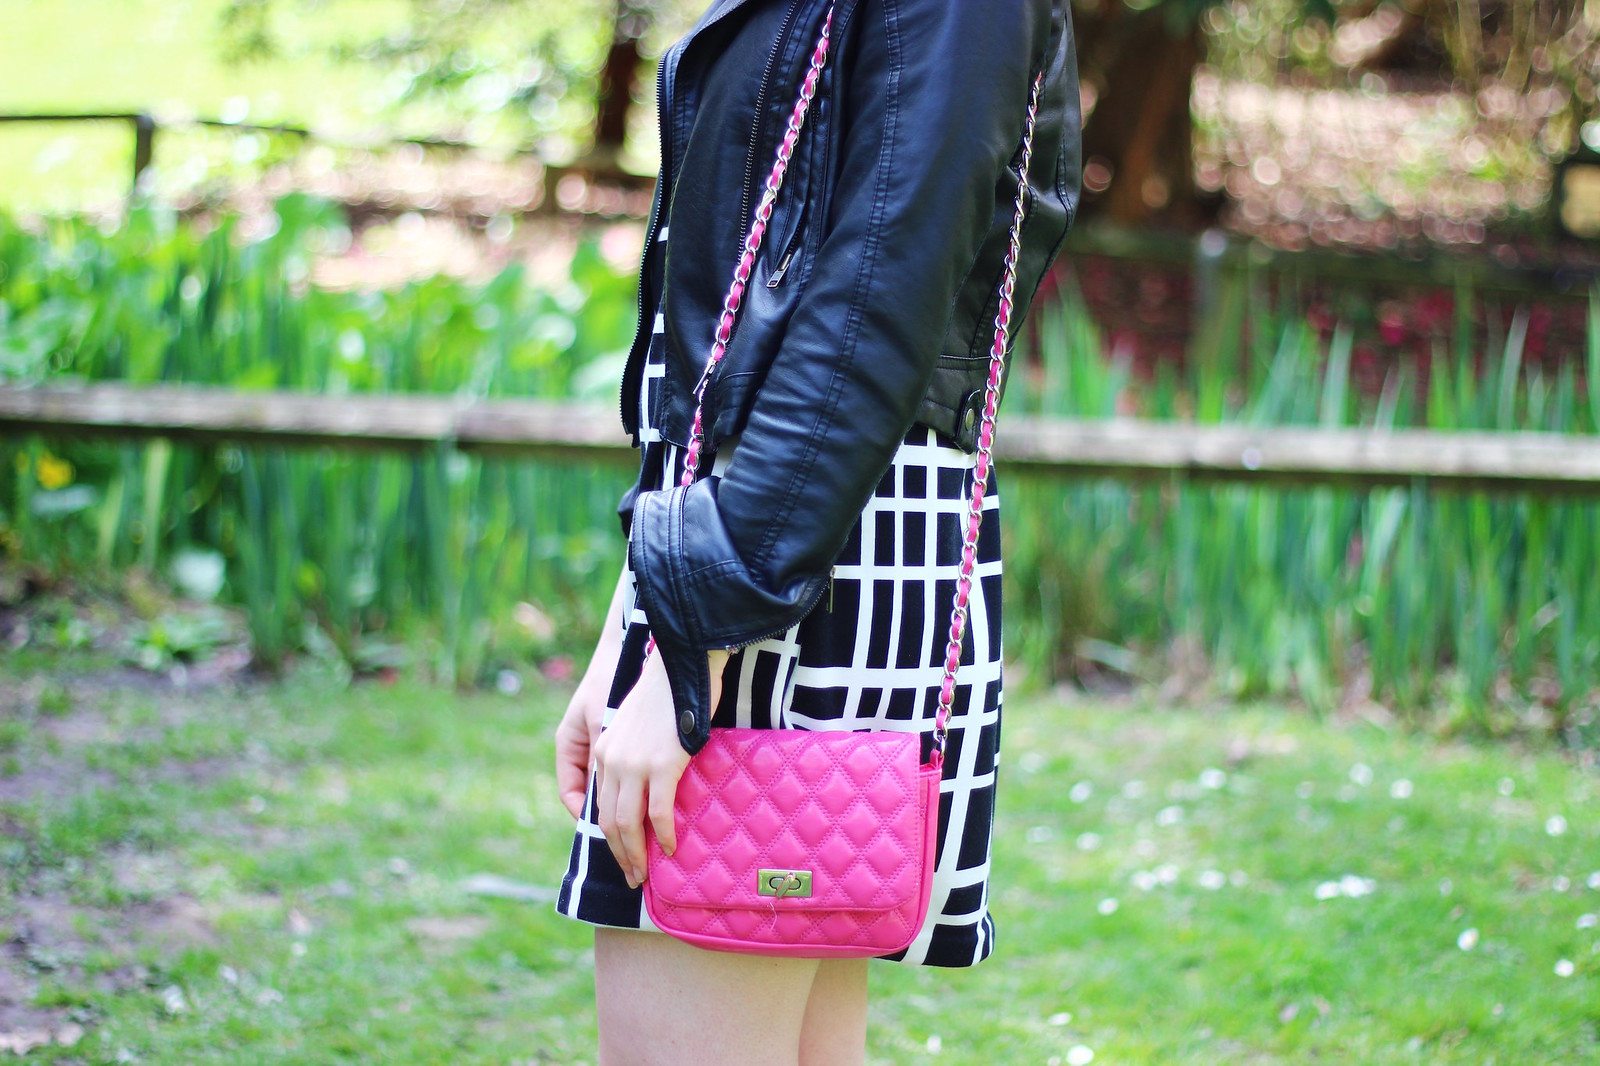 6pinkbag, check, grid, dress, monochrome, leather jacket, spring, fashion, high street, blogger, personal style, sixties, cat eye sunglasses, asos, pink, quilted bag